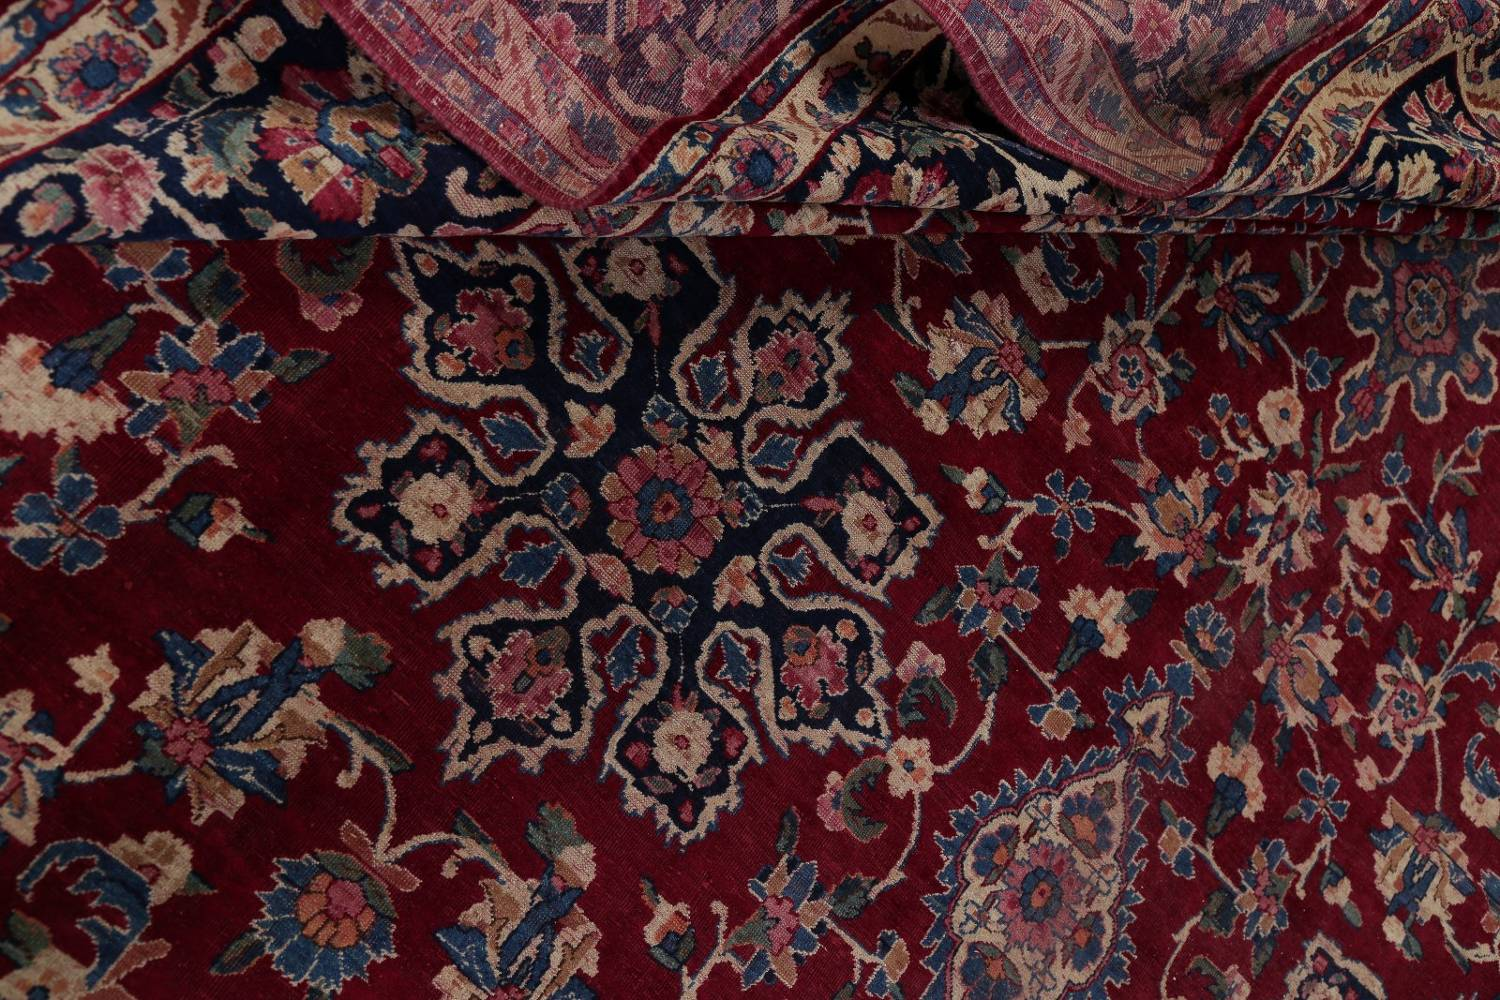 All-Over Floral 11x16 Yazd Persian Area Rug image 22